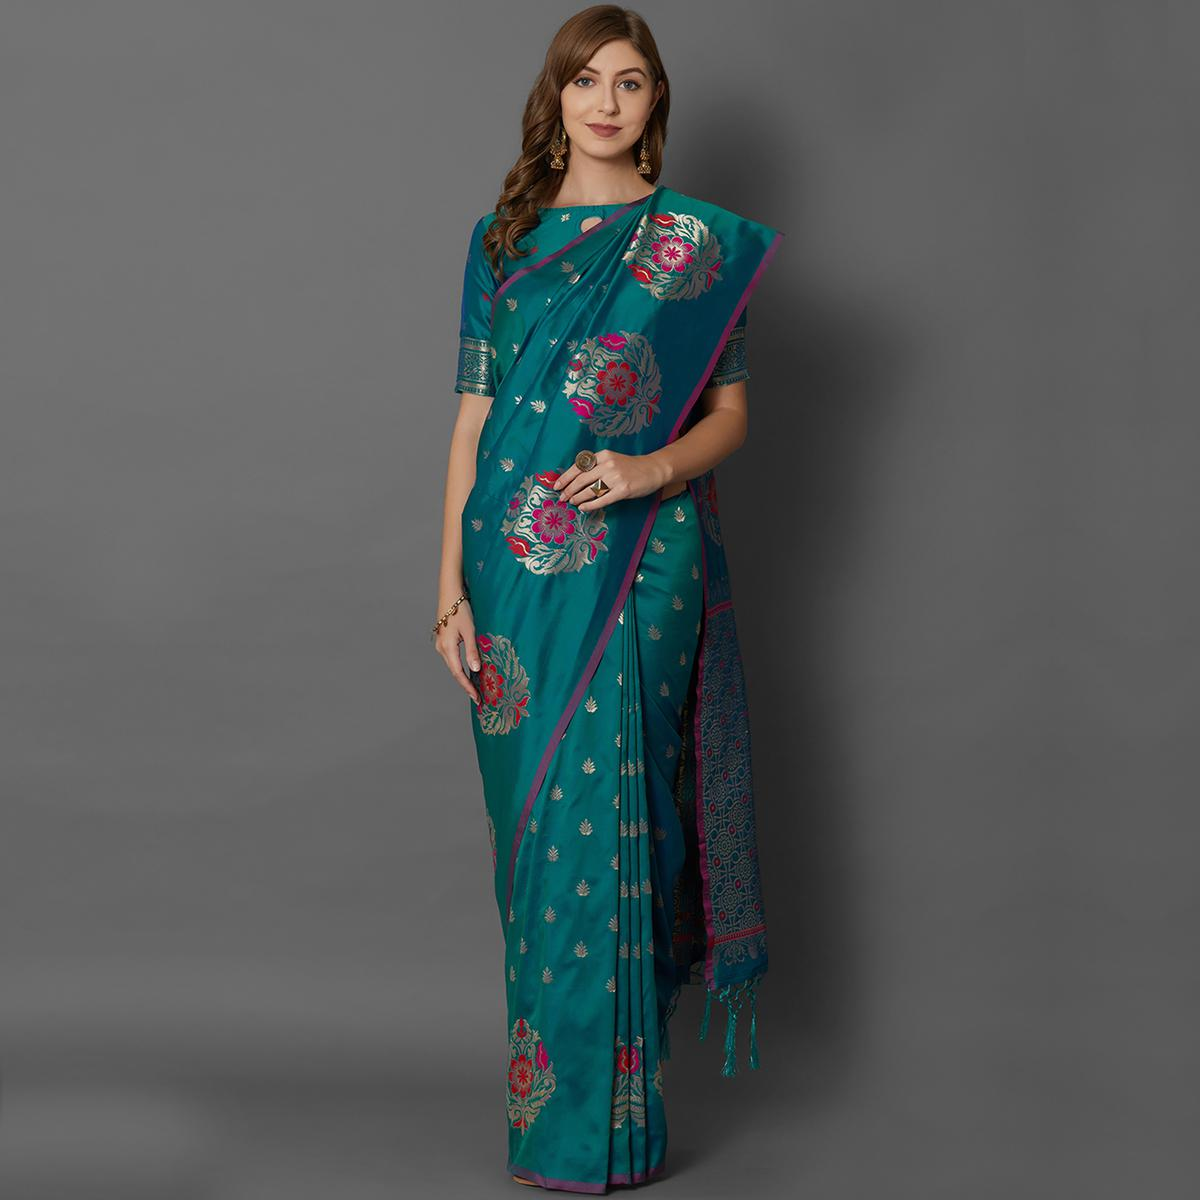 Sareemall Teal Green Festive Wear Silk Blend Woven Border Saree With Unstitched Blouse